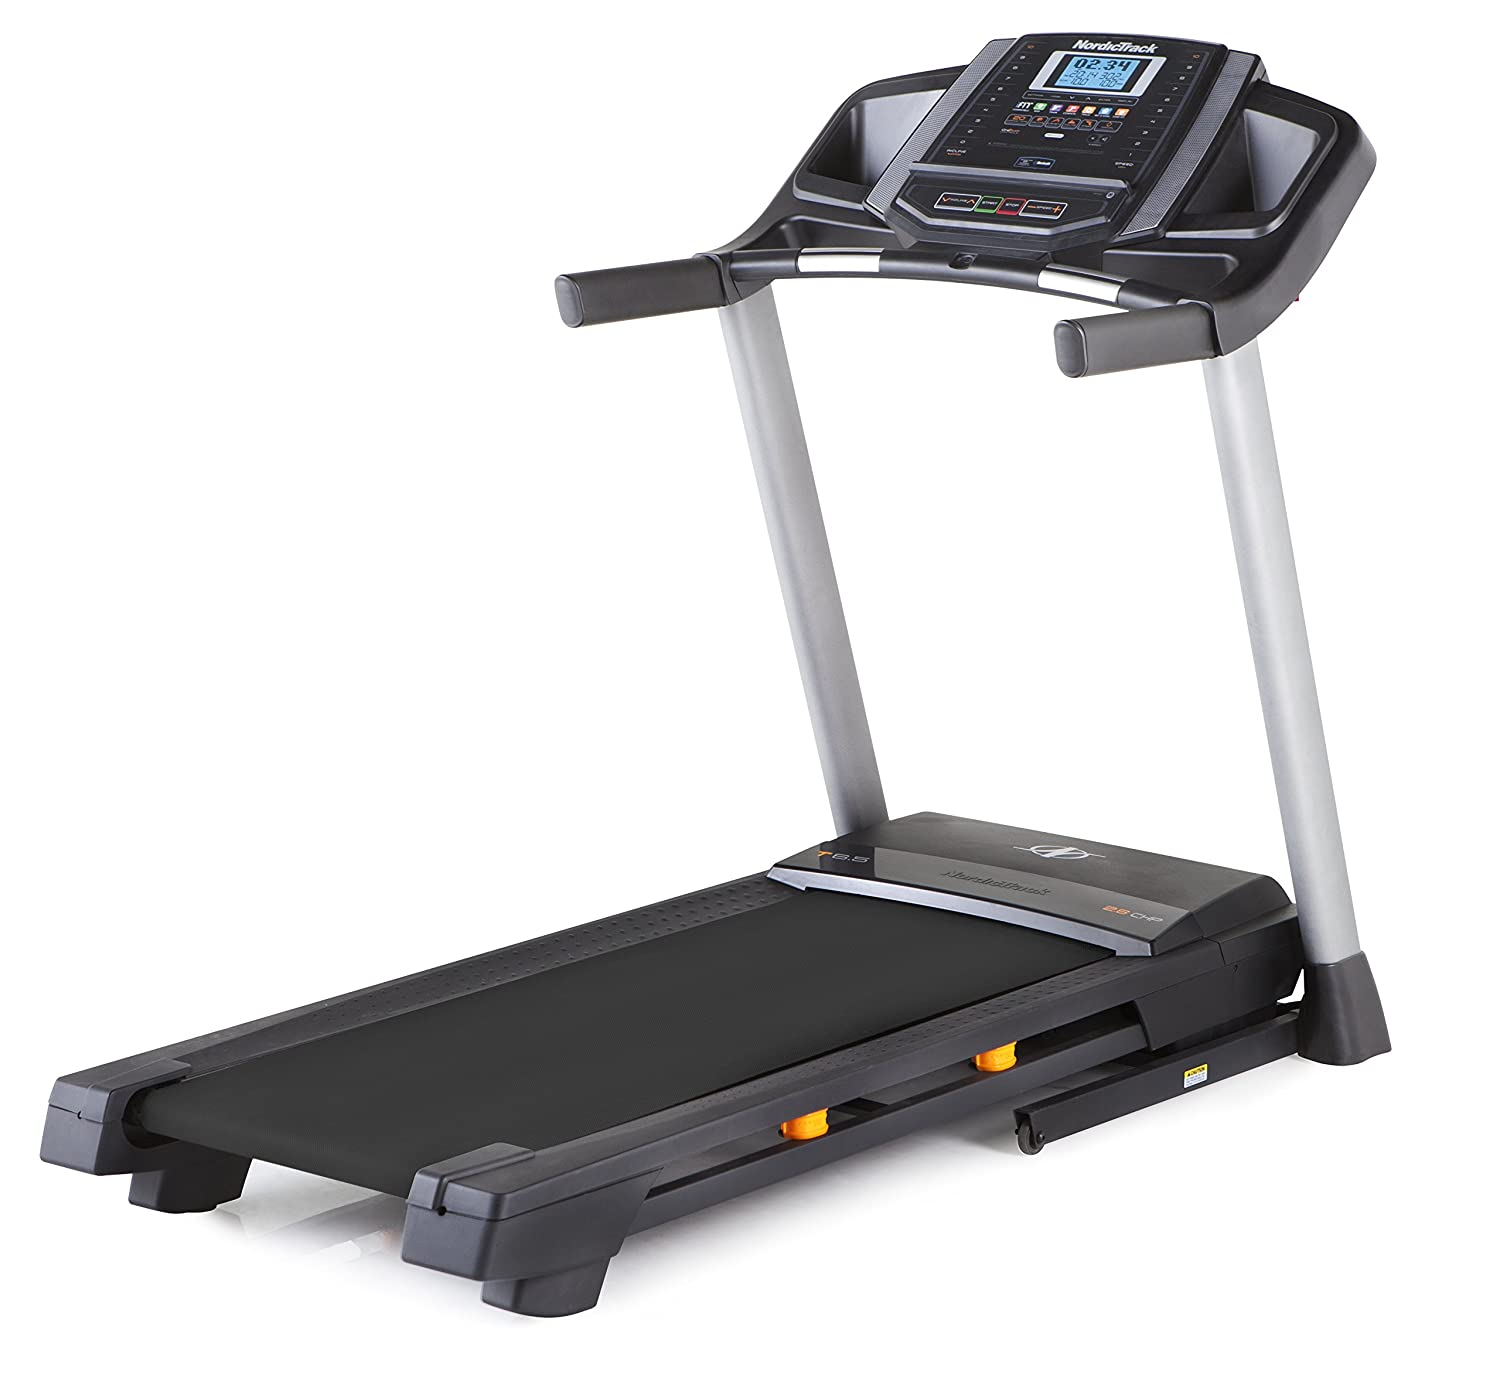 81qN87dpUxL._SL1500_ amazon com nordictrack c 1650 treadmill sports & outdoors  at gsmportal.co